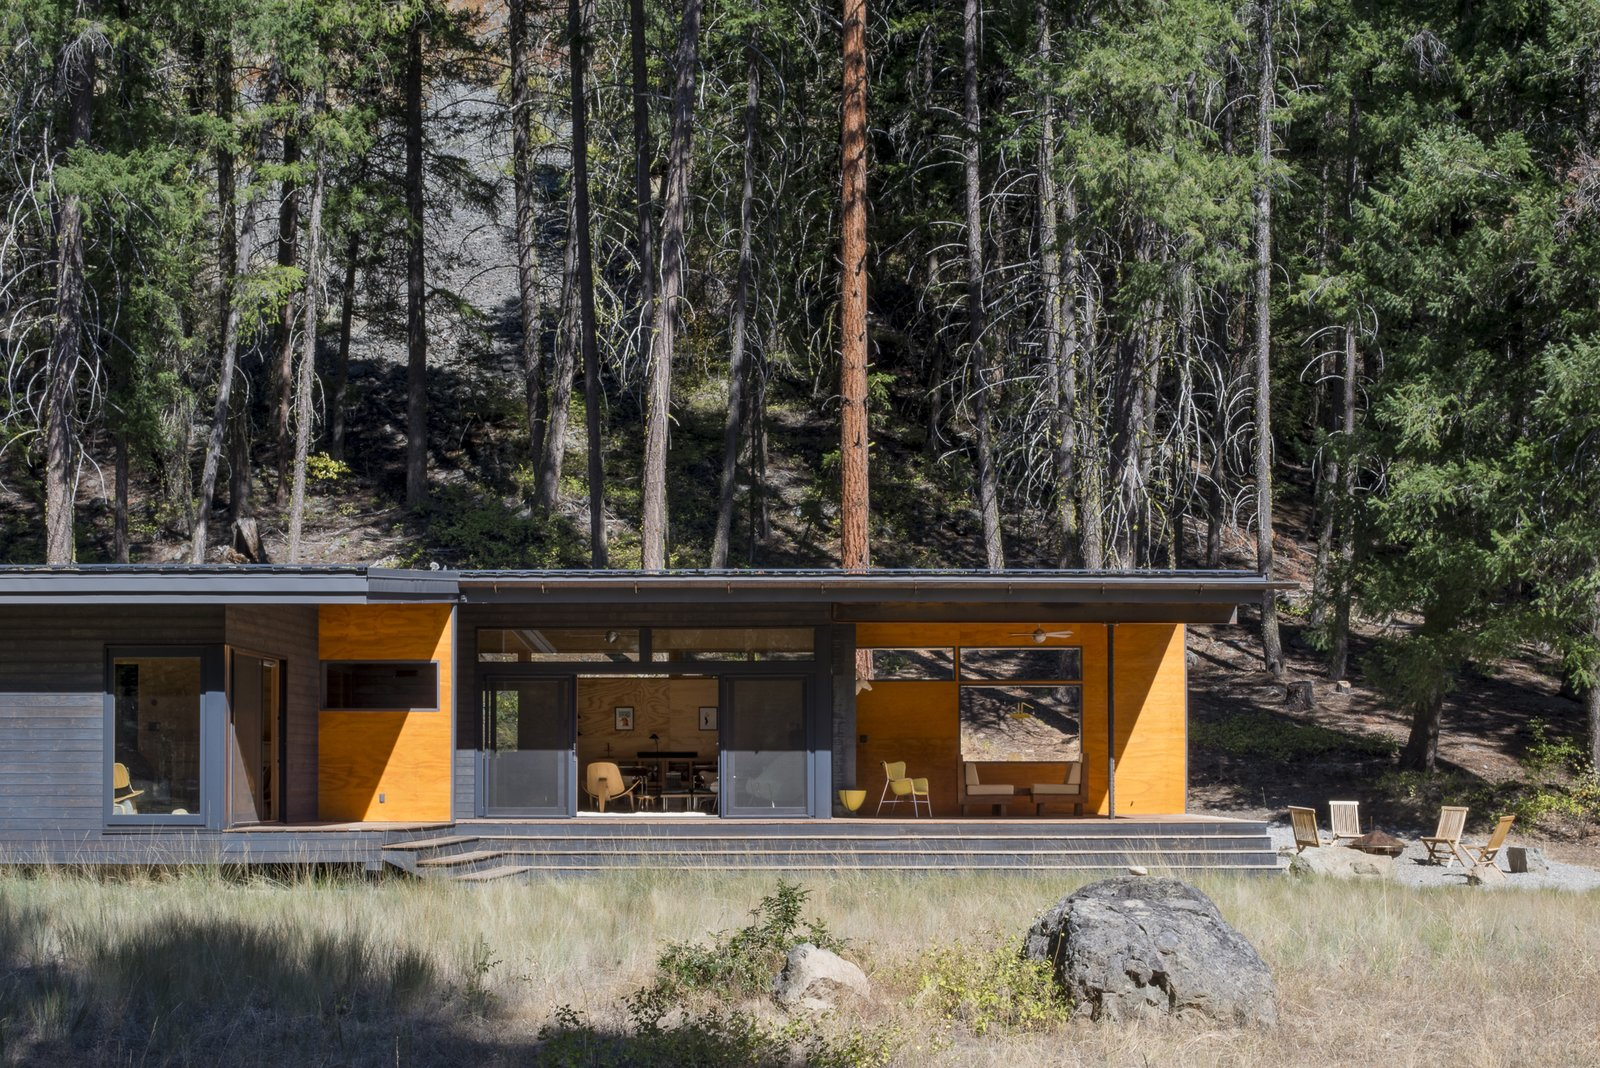 Chechaquo Lot 6 Cabin exterior